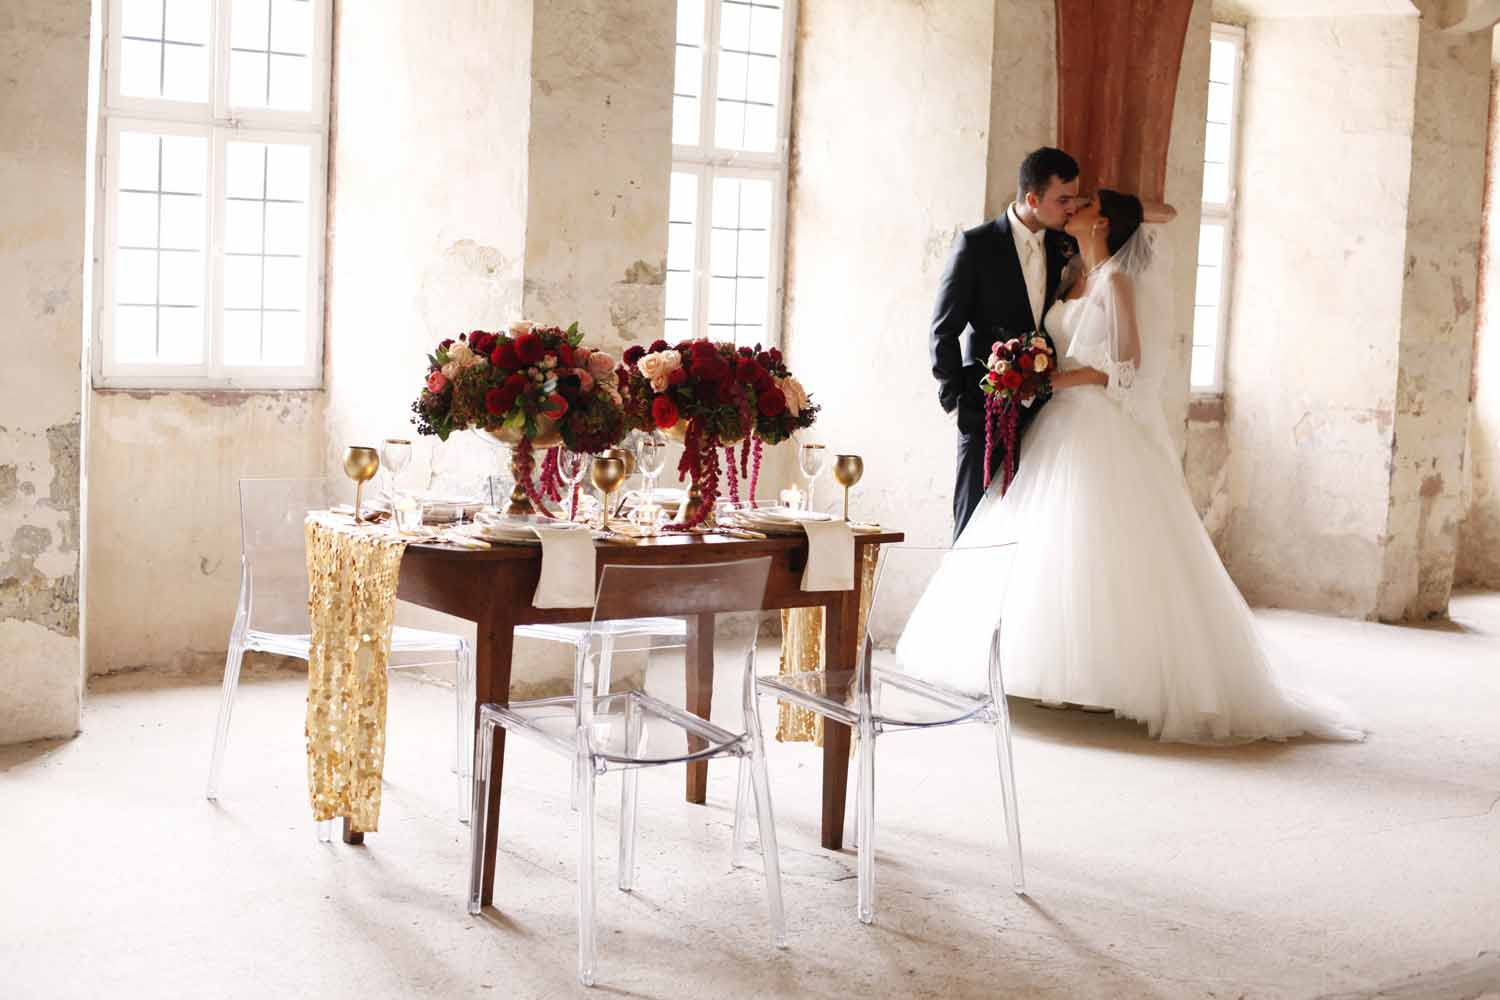 Bride and groom with sweetheart table for Wedding Style Shoot in Kloster Eberbach, Germany, designed by Flora Nova Design, Seattle